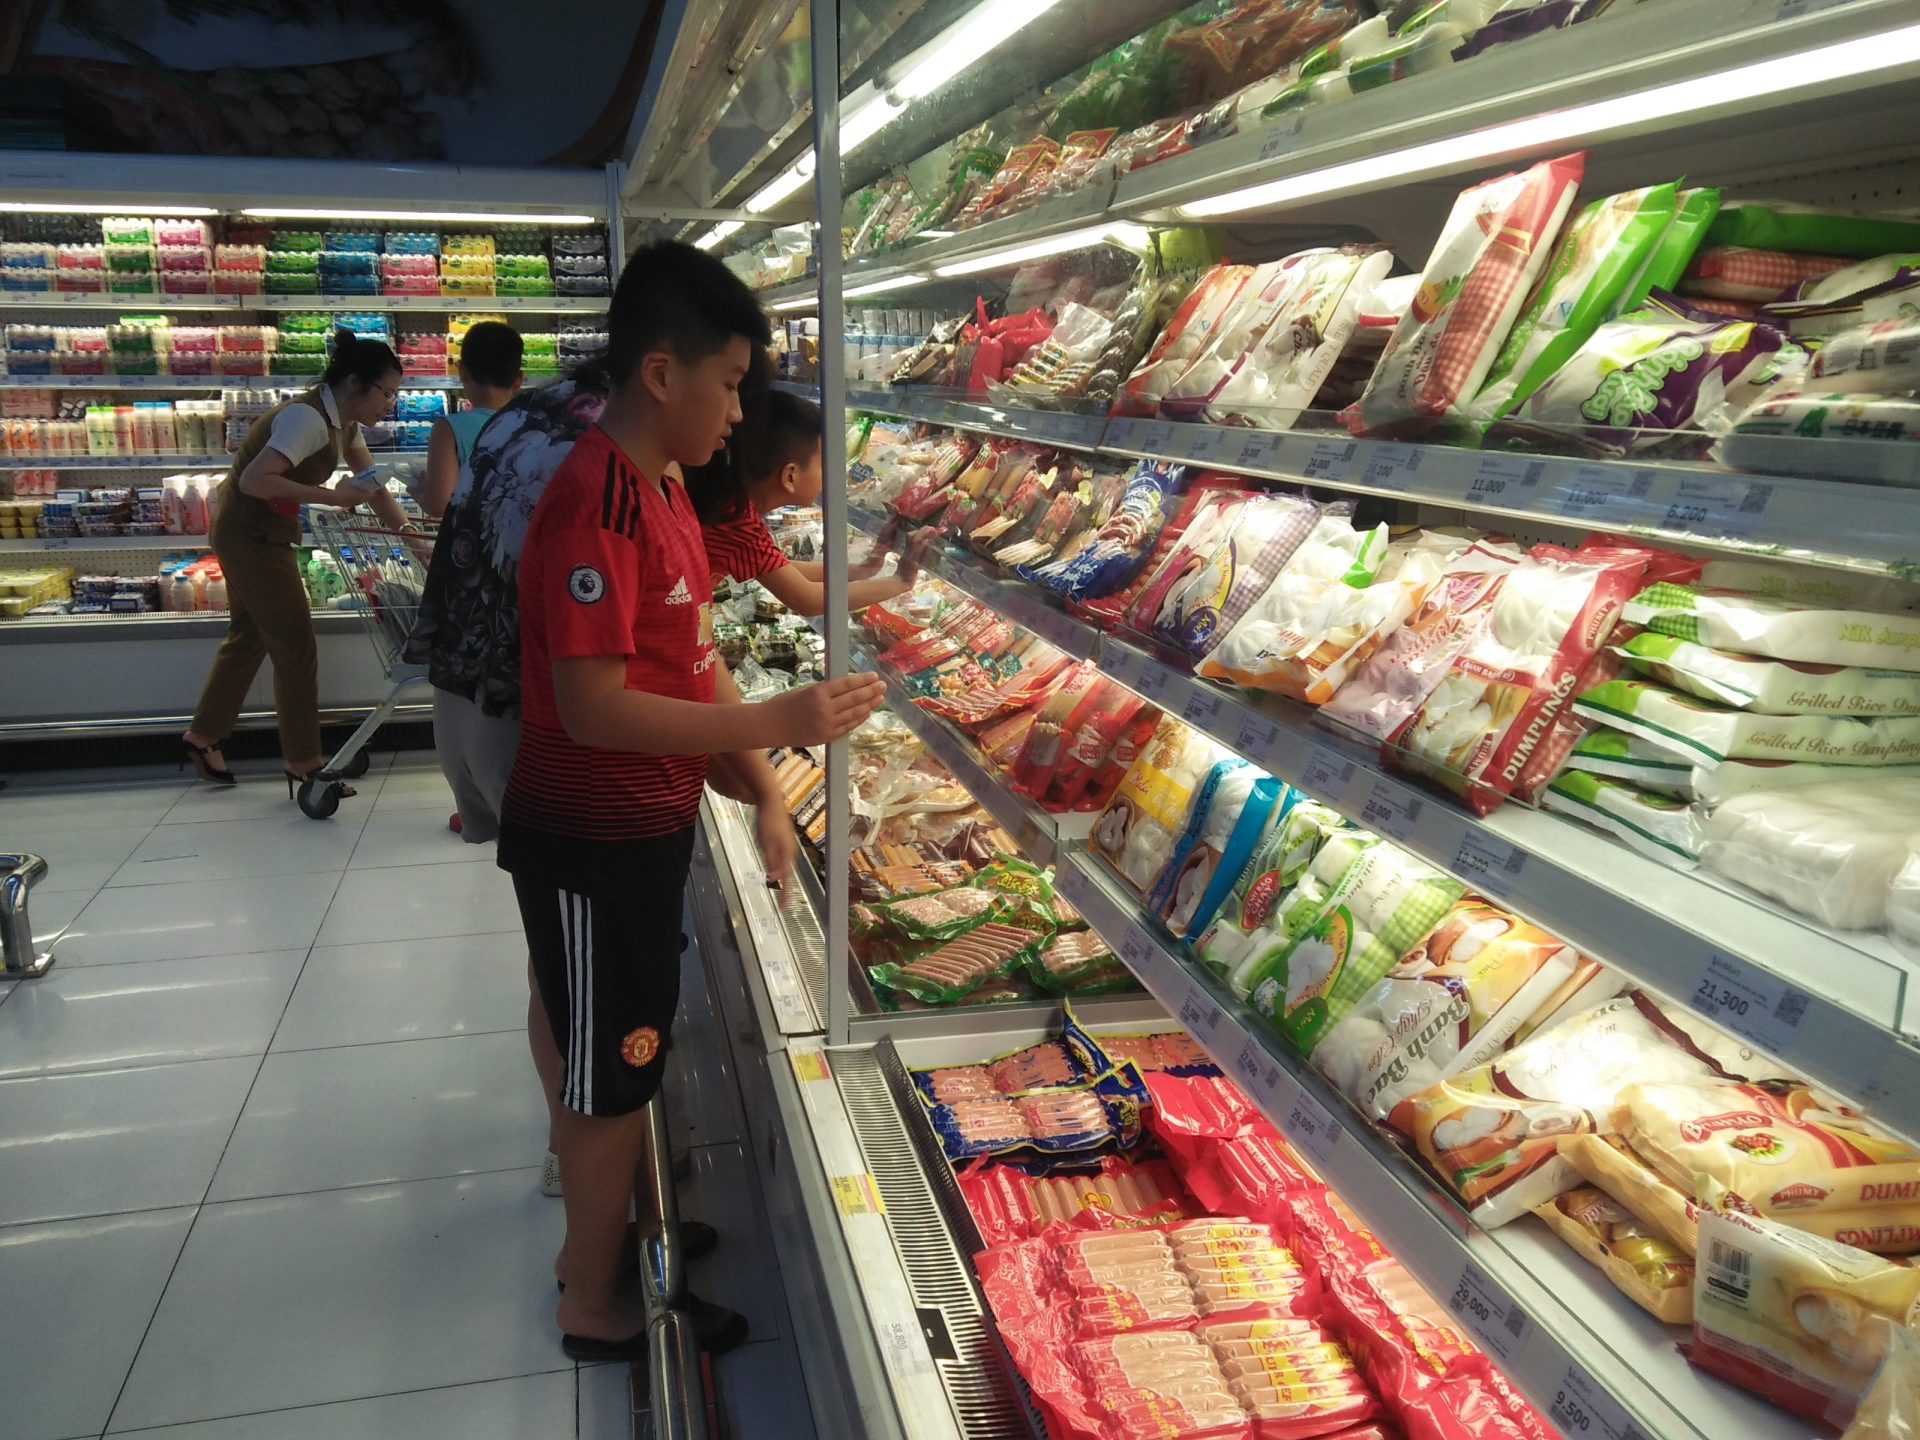 The government orders inspections to lasso in runaway pork prices